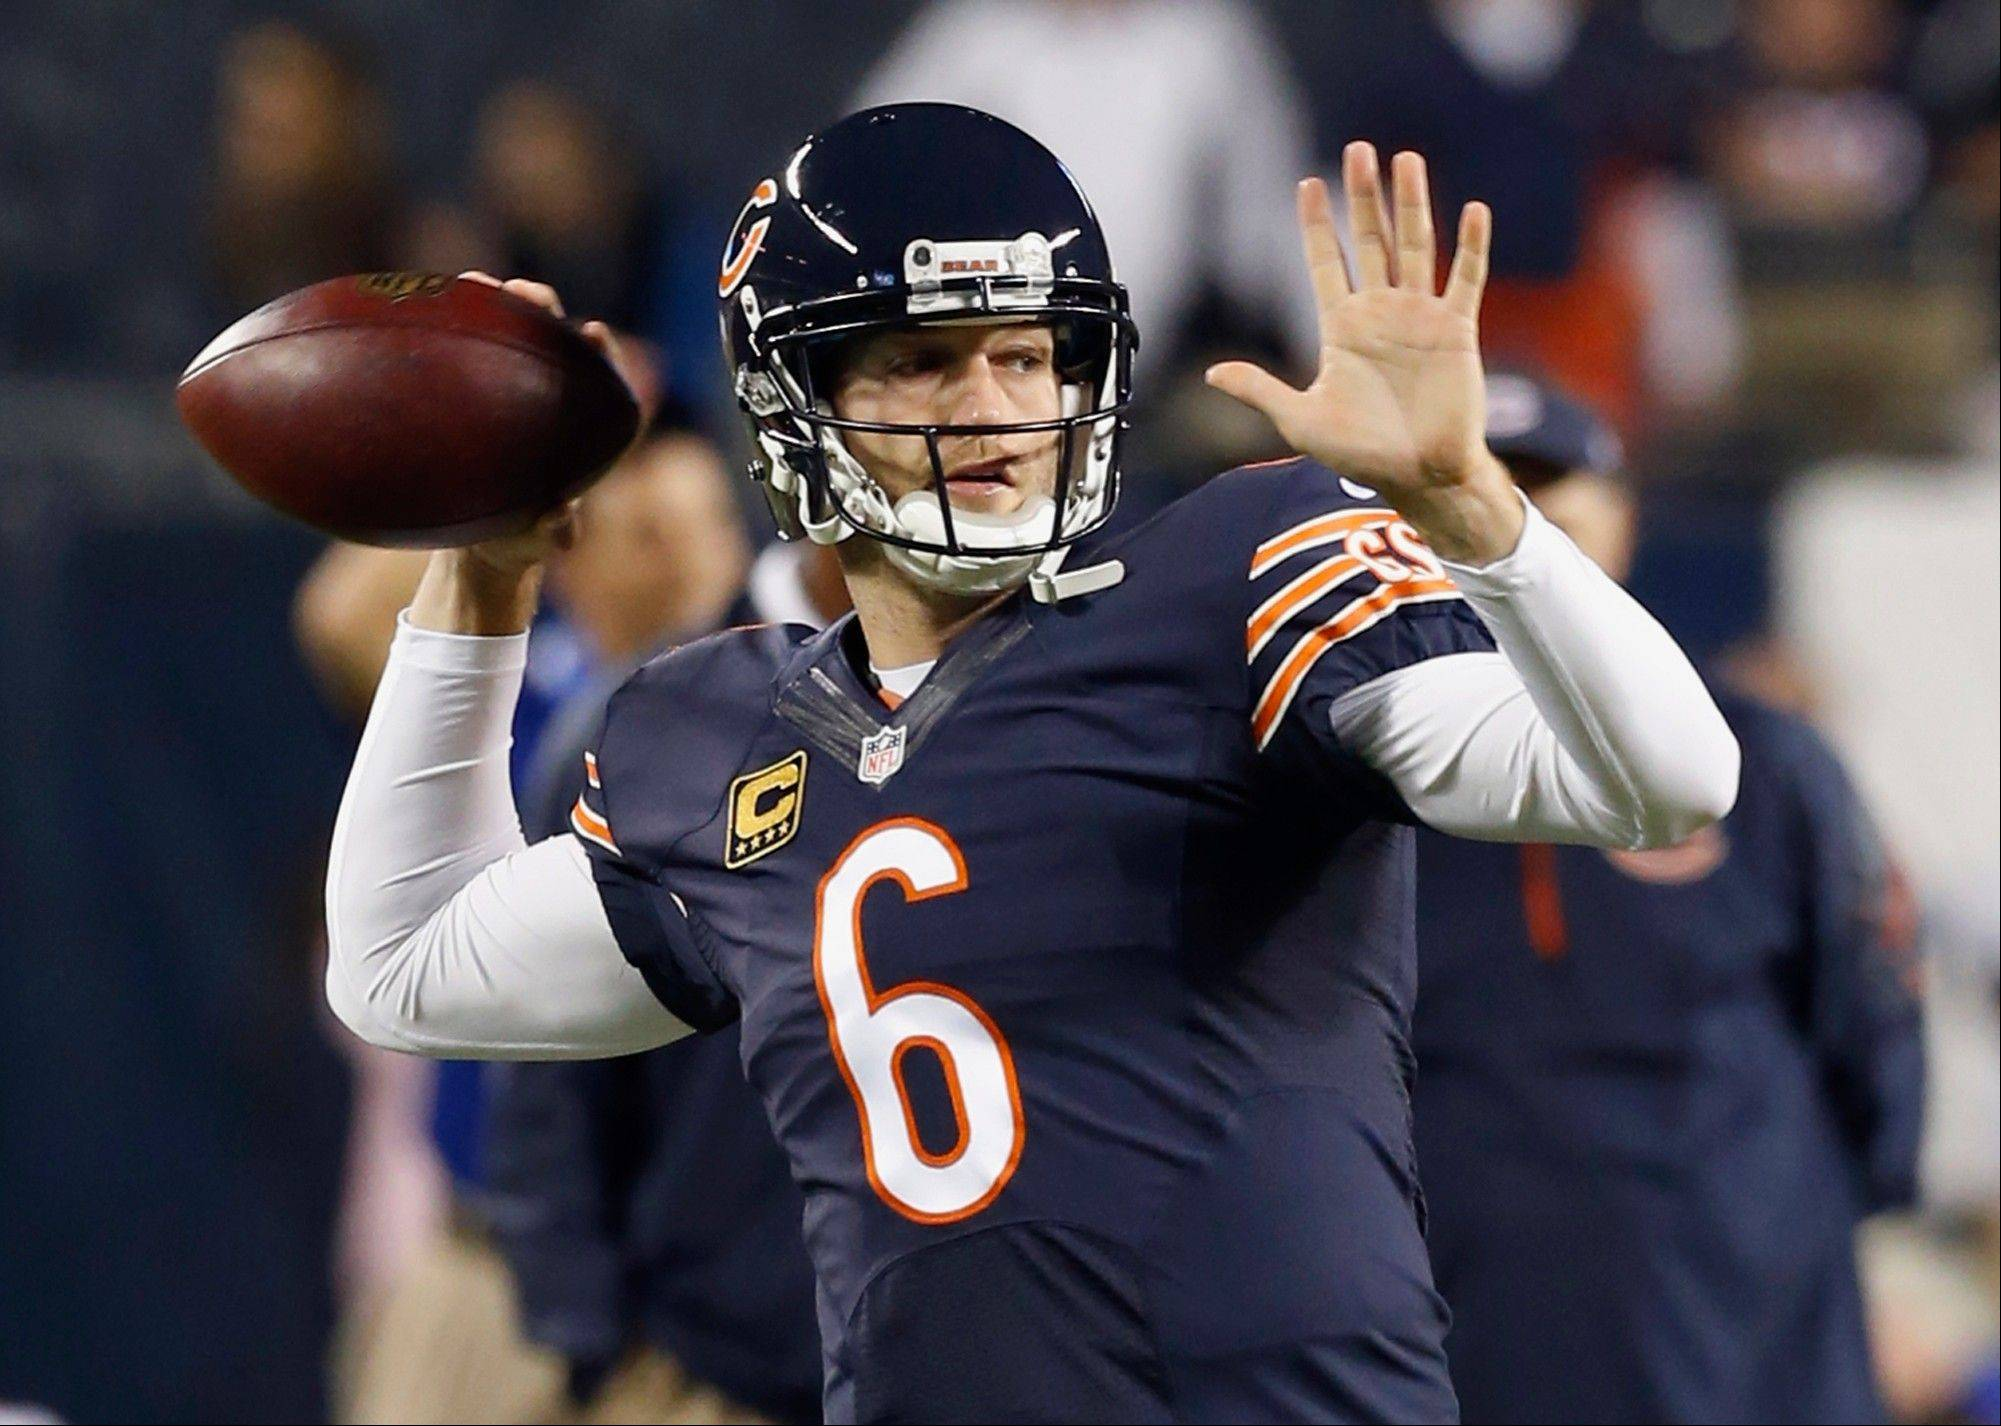 Quarterback Jay Cutler and the Bears are doing just fine as they sit in a first-place tie with the Detroit Lions through six games.